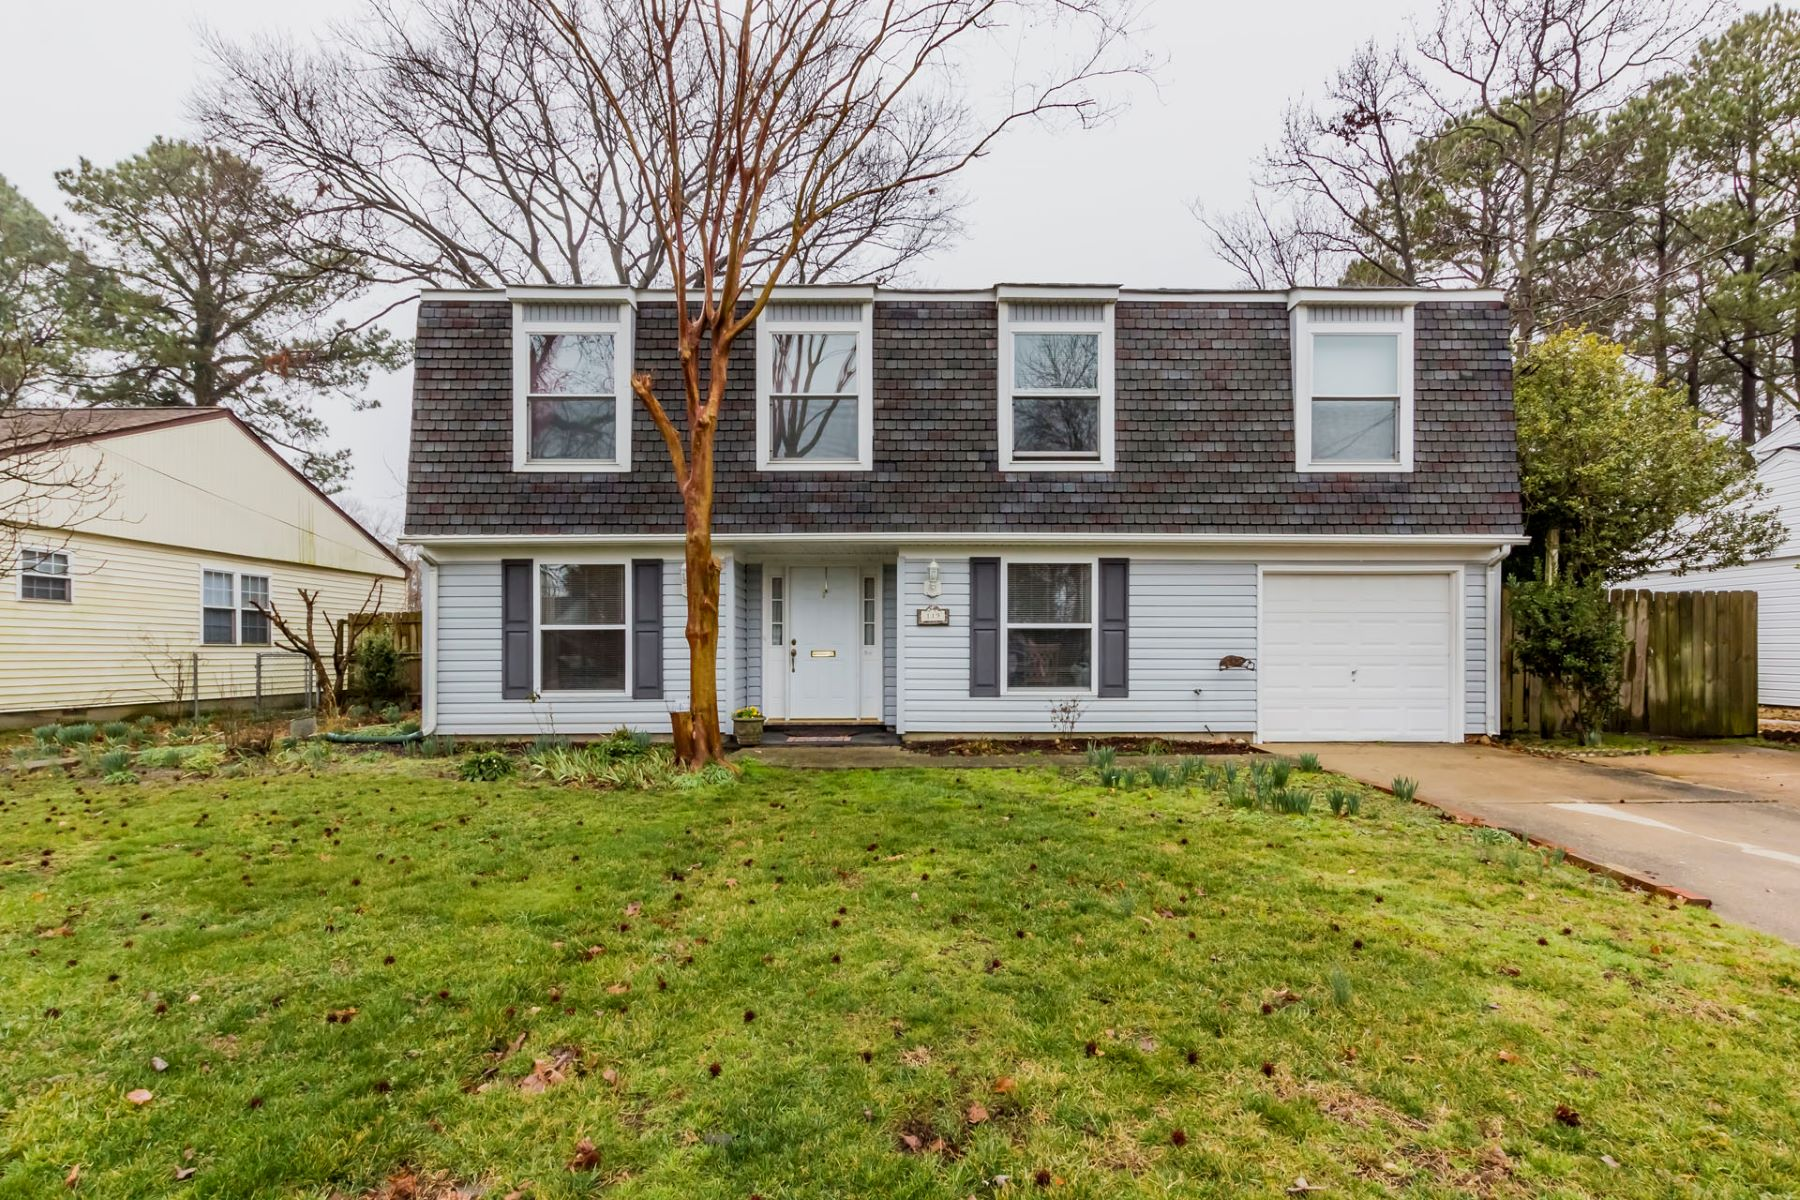 Single Family Home for Sale at TIDEMILL FARMS 119 Diggs Drive Hampton, Virginia 23666 United States